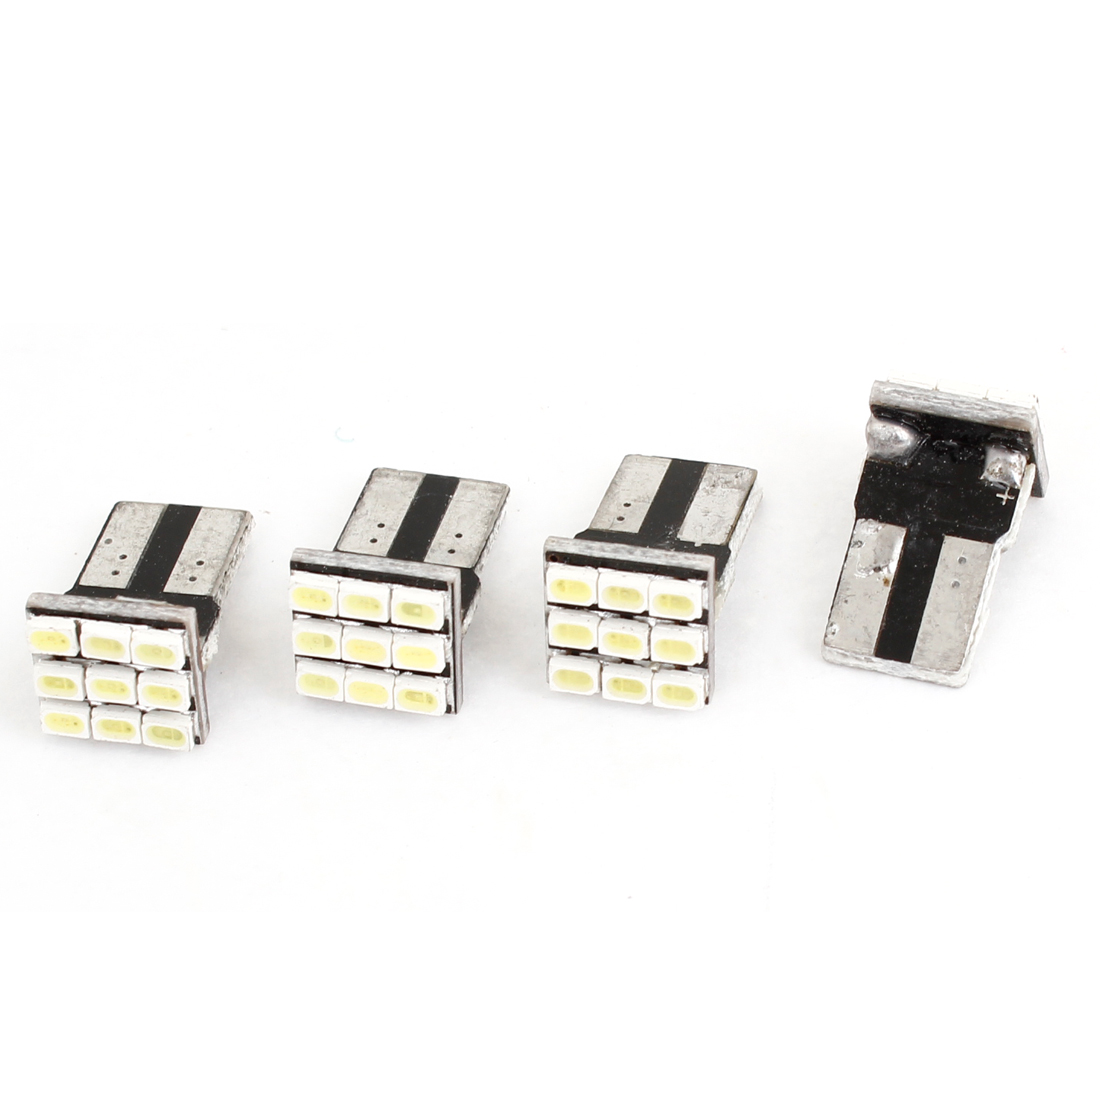 4PCS T10 White 9 LED 1206 SMD Interior Dashboard Light Bulb for Car